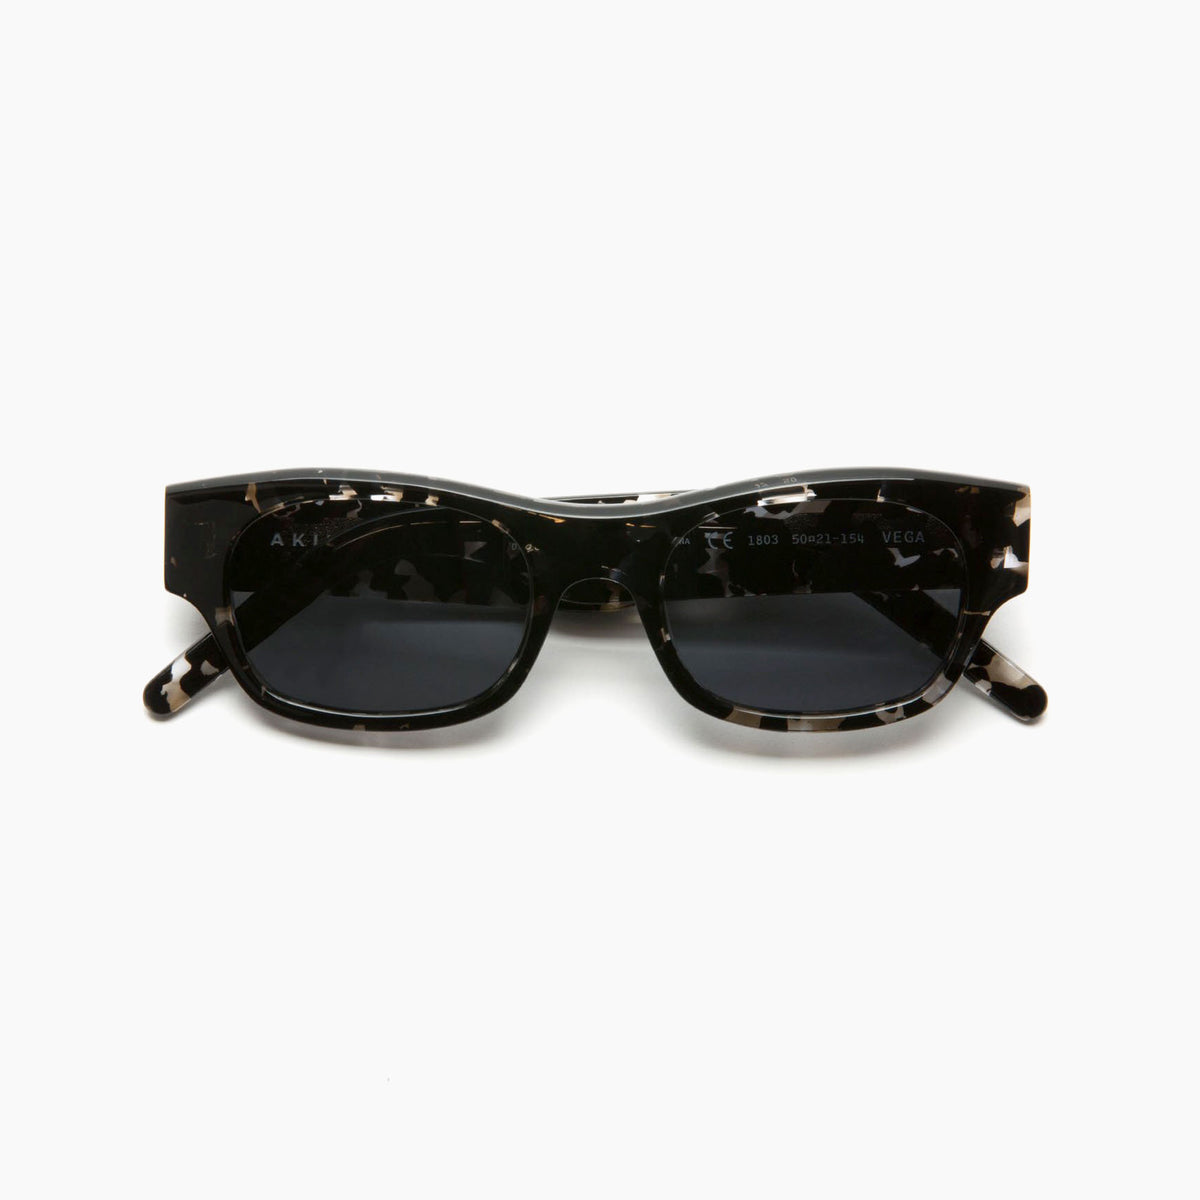 Akila Eyewear Vega Sunglasses in Tortoise / Black